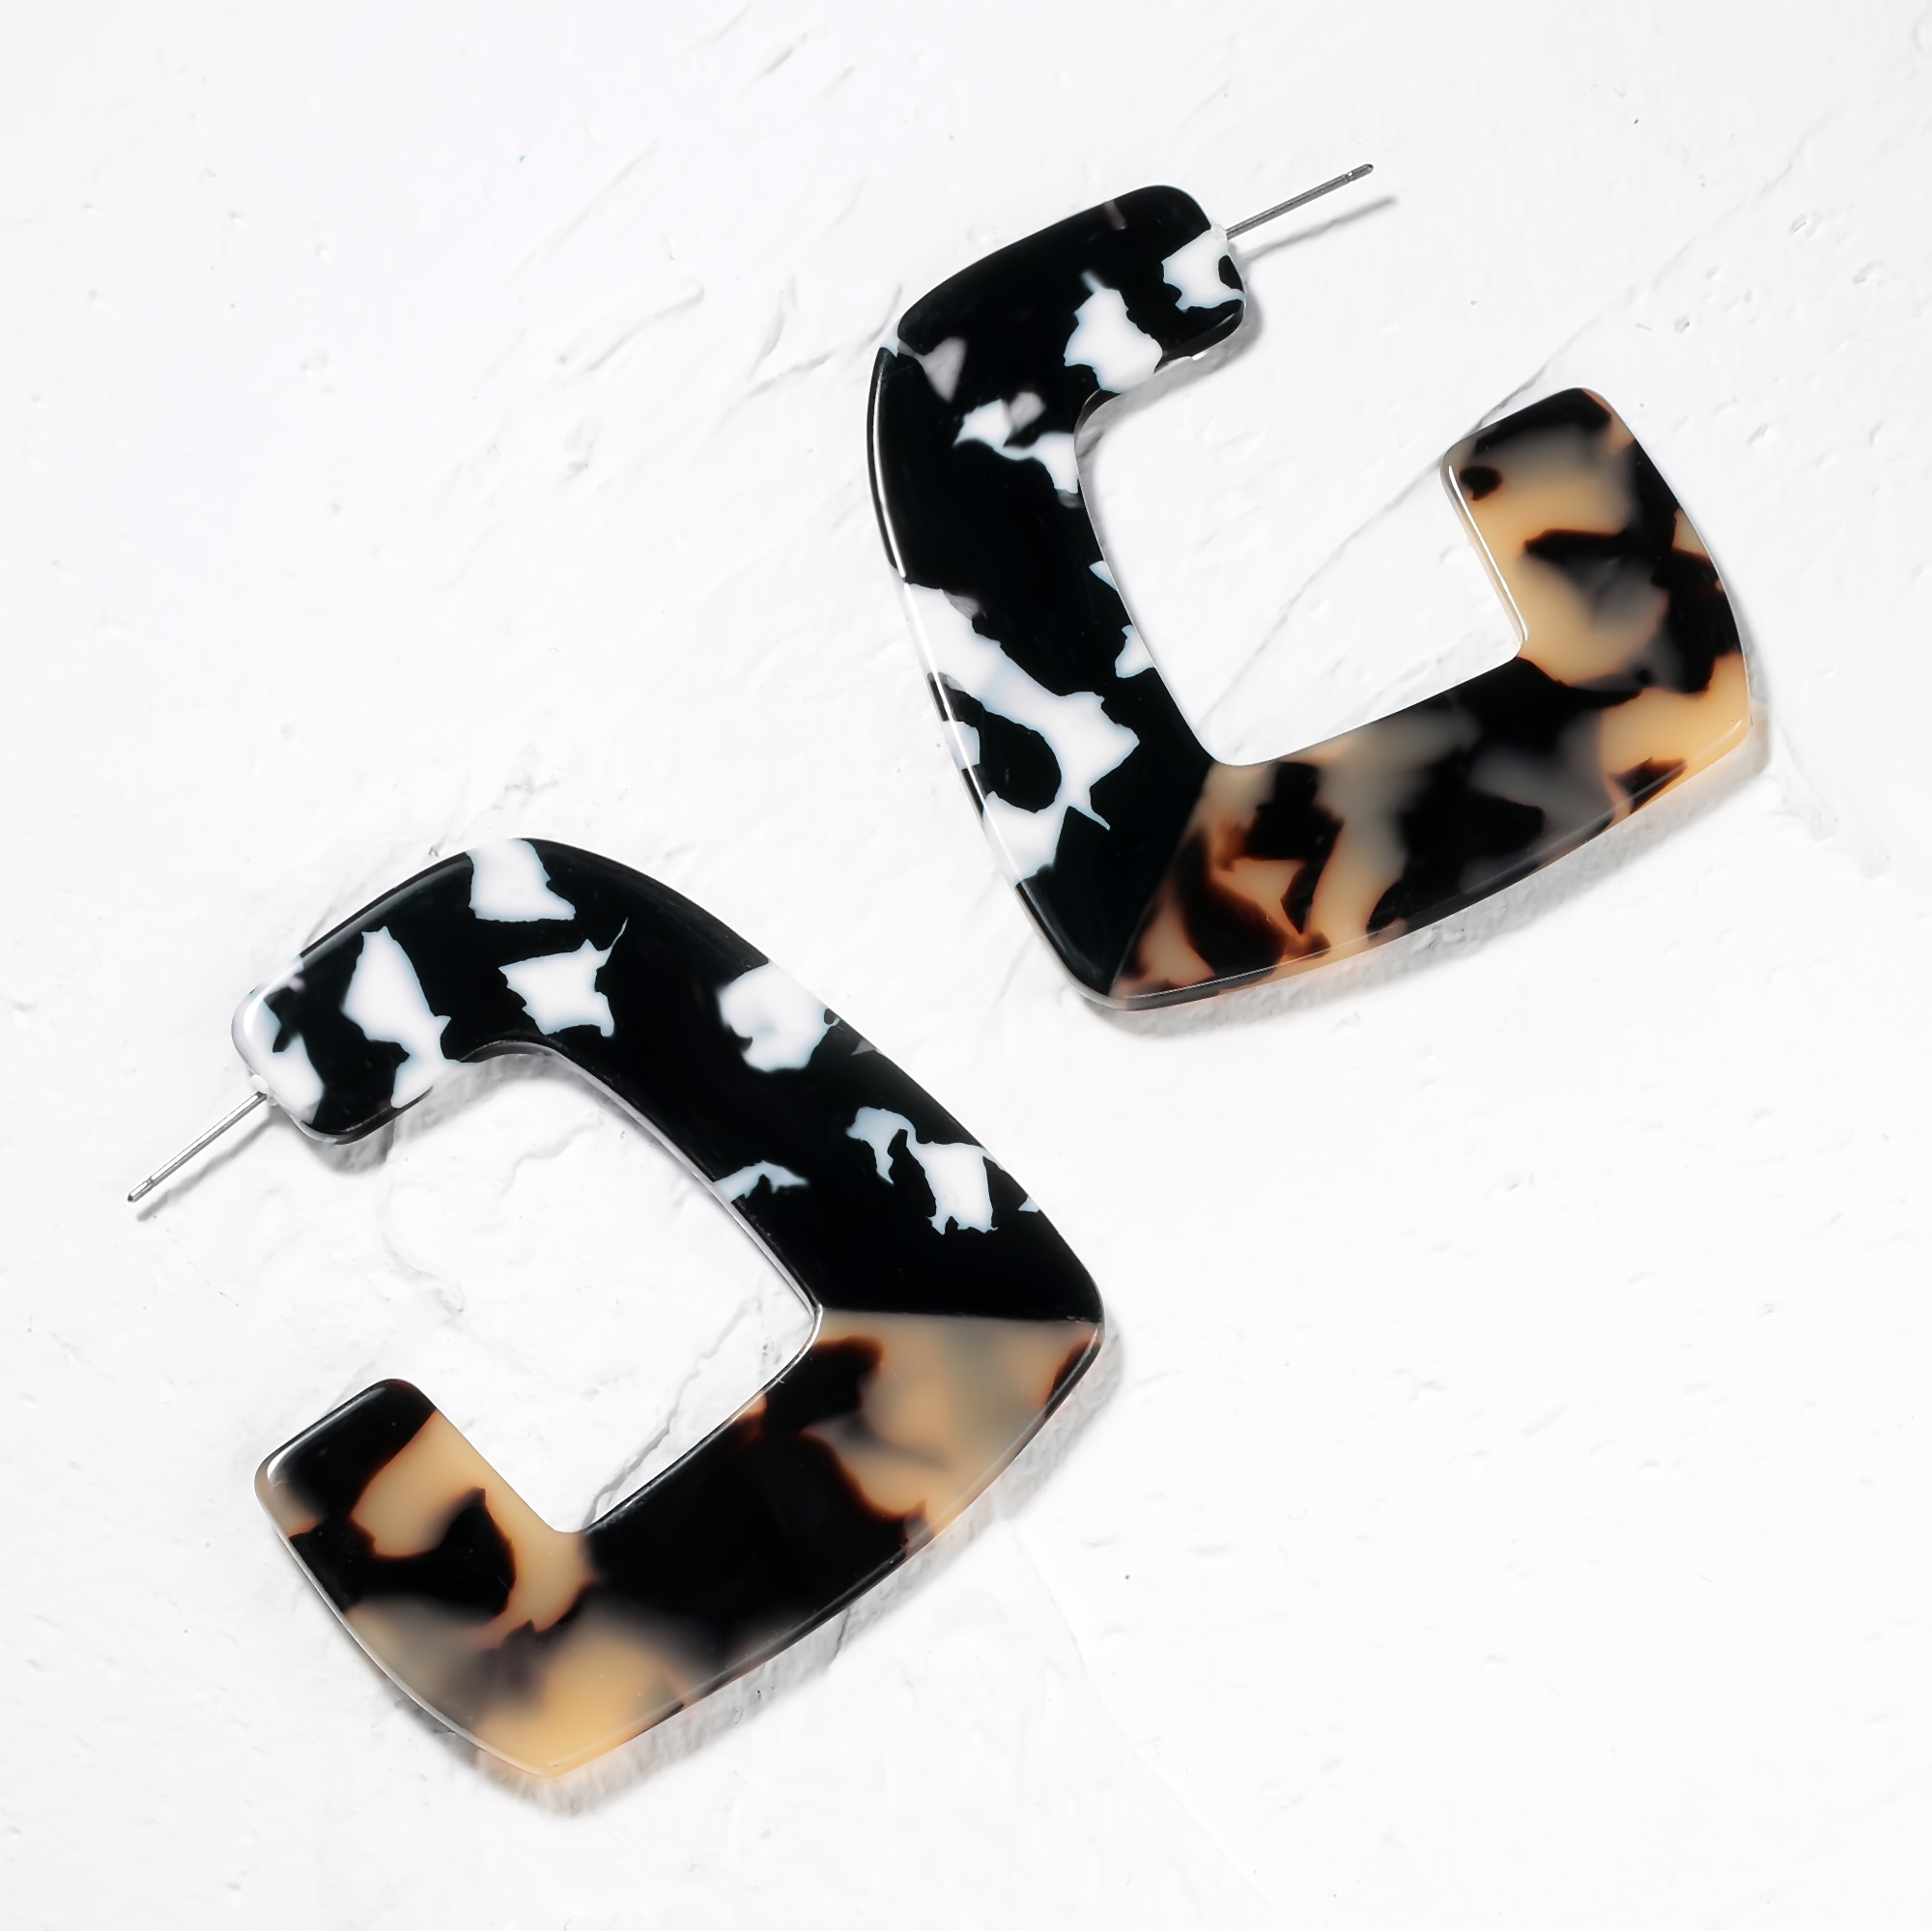 Geometric Stitching Acrylic Leopard Earrings for Women Square Opening Tortoiseshell Drop Bohemian Vintage Jewelry Gifts